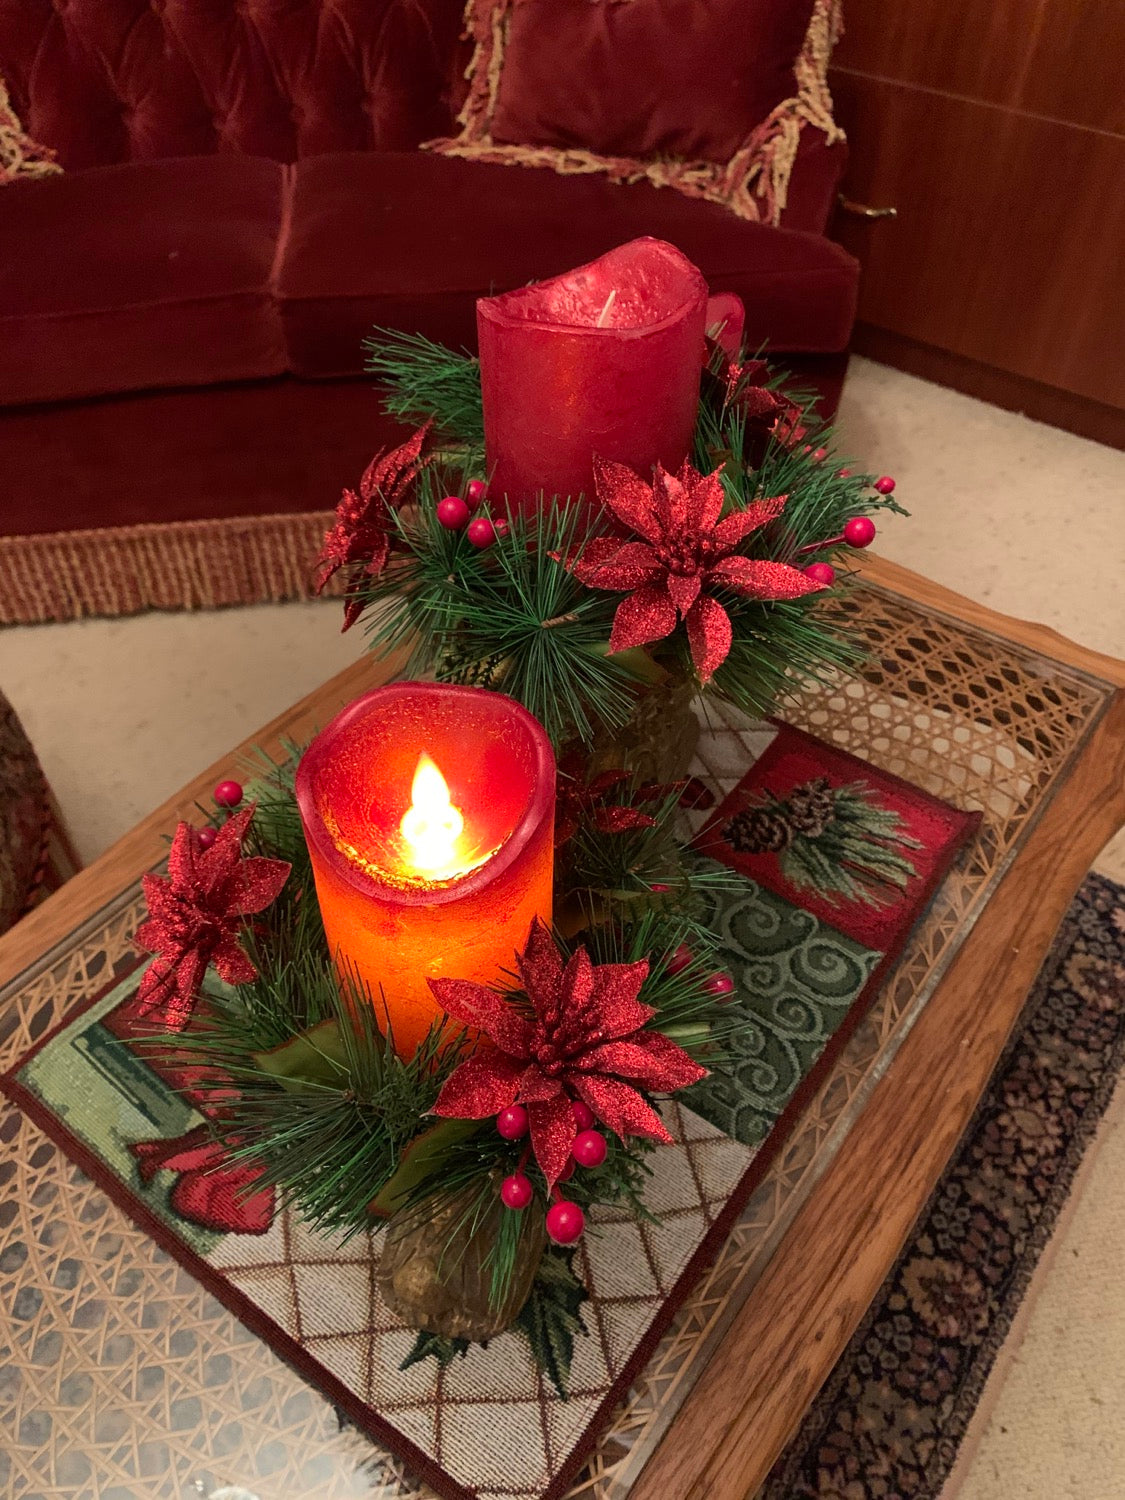 Christmas Decorations - Flameless Red Candle